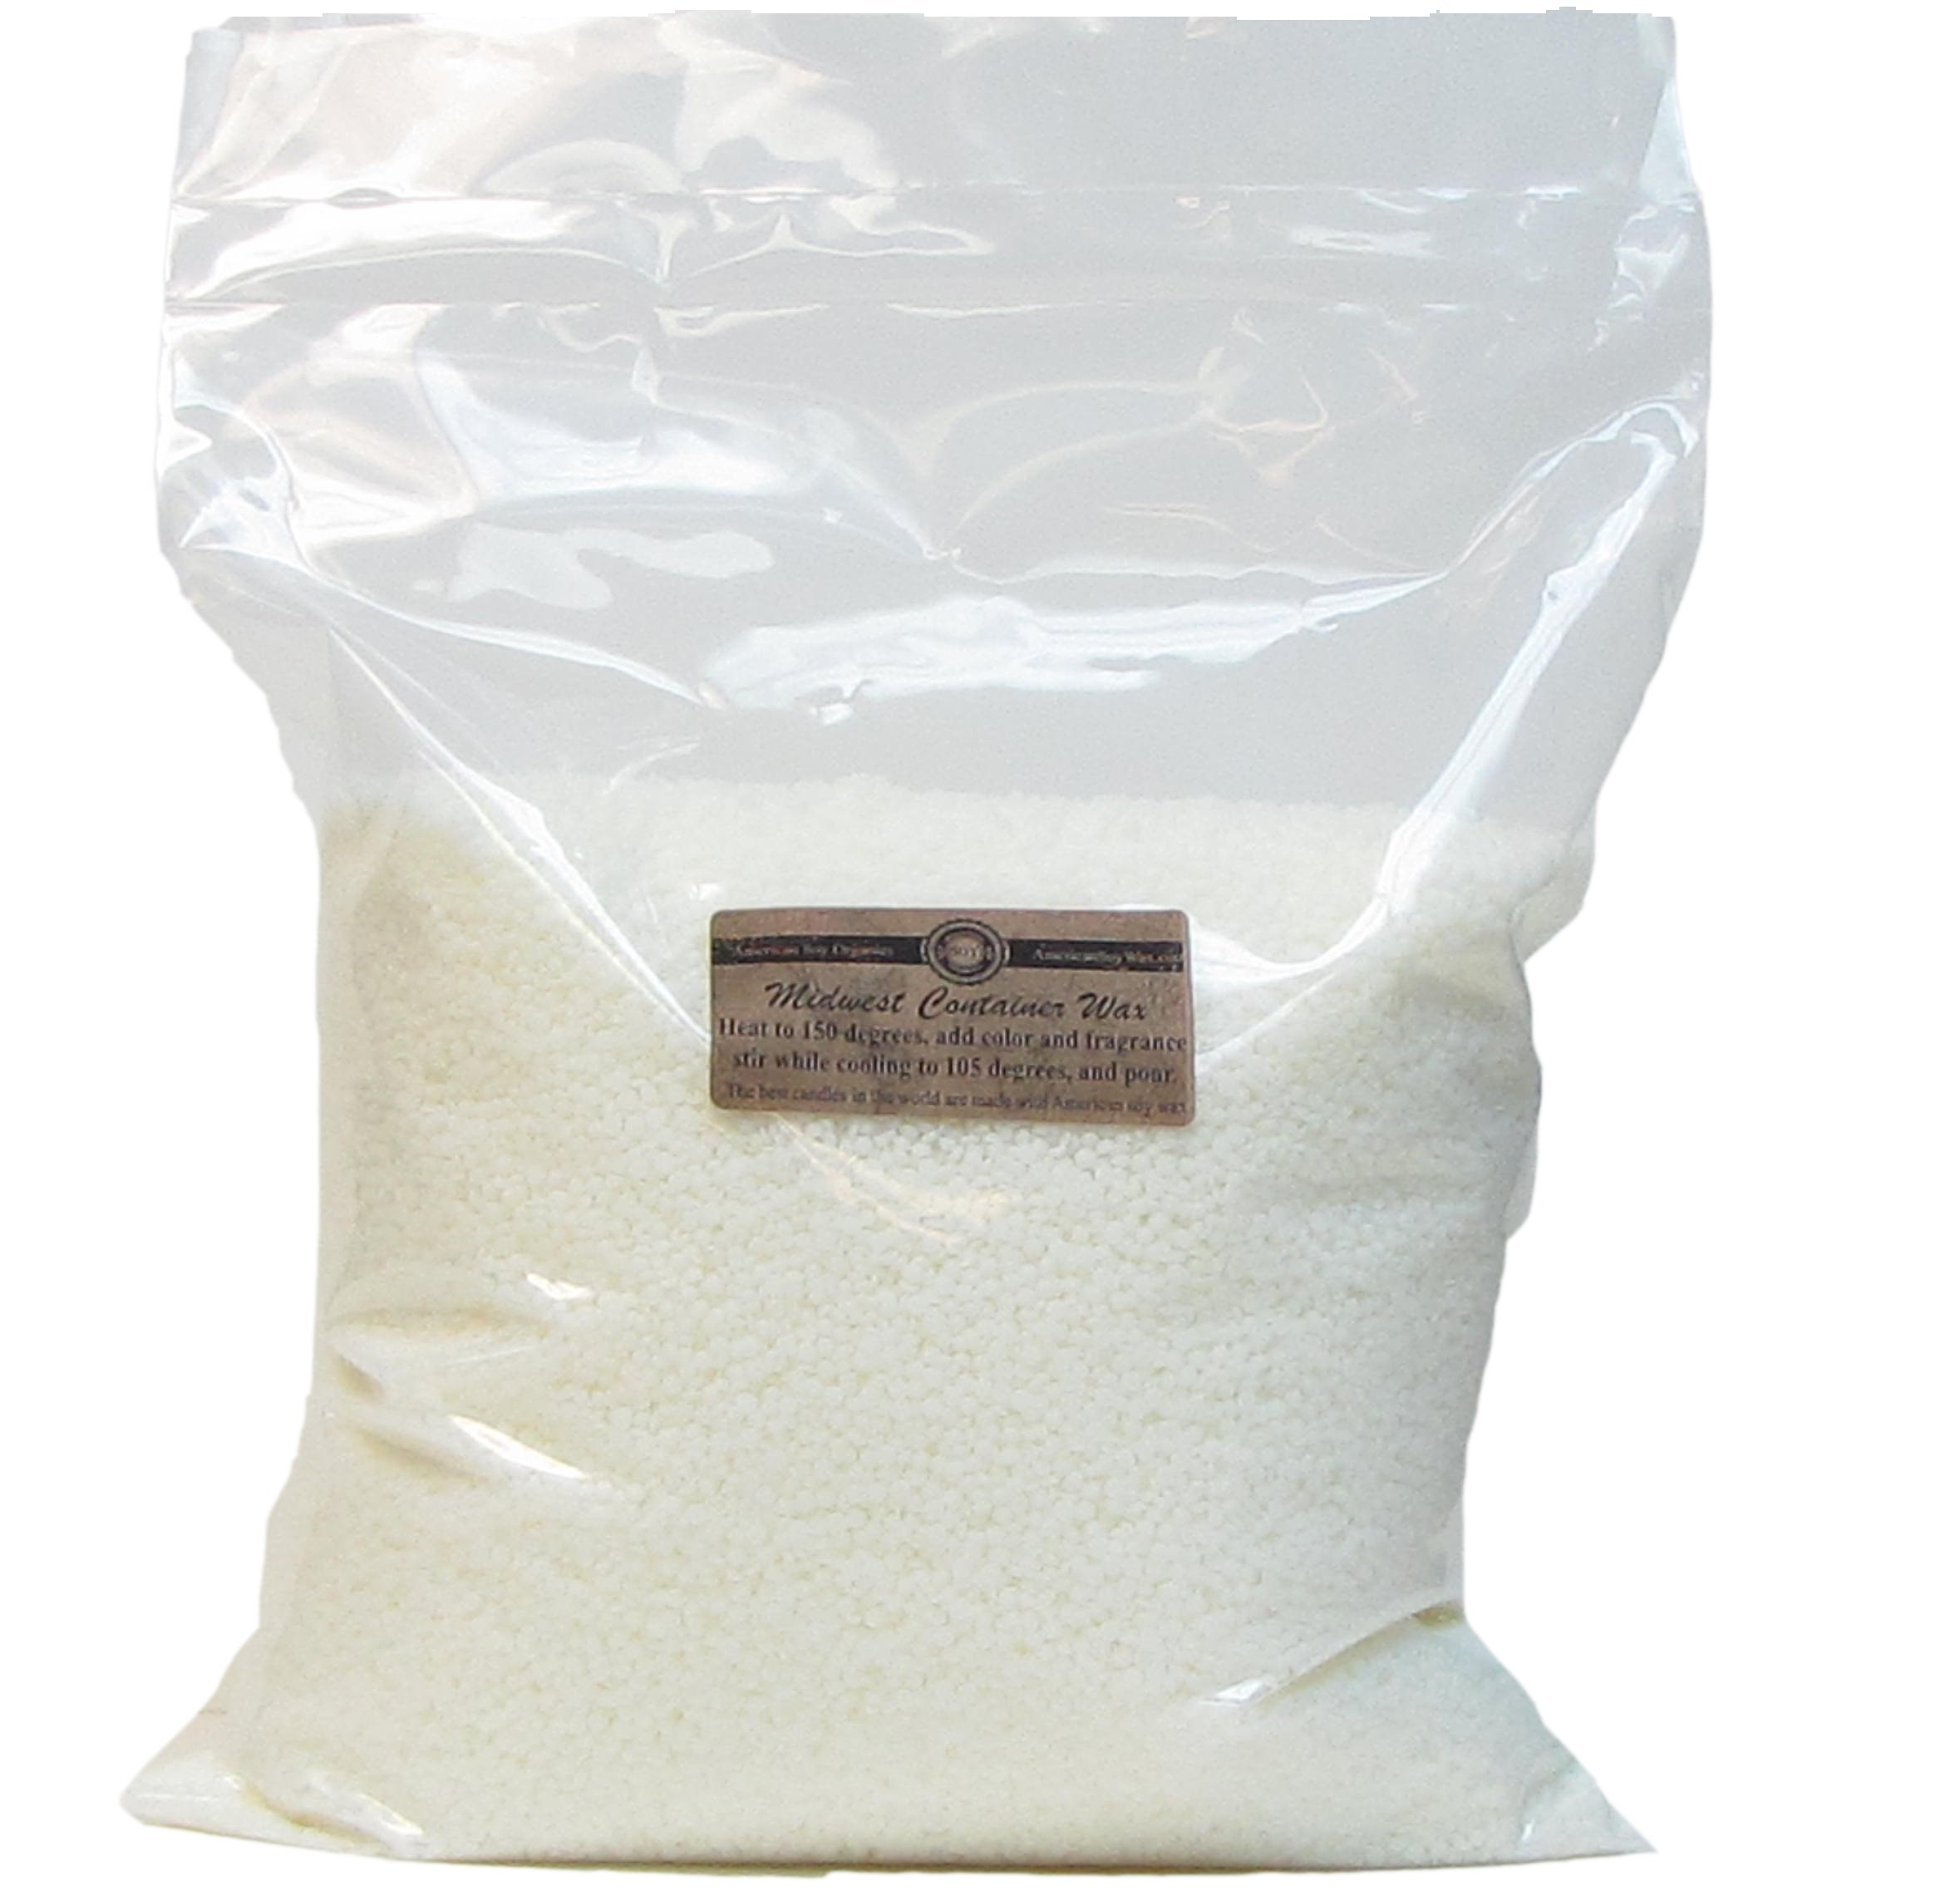 100% Midwest Soy Container Wax by American Soy Organics (50 pound bag)